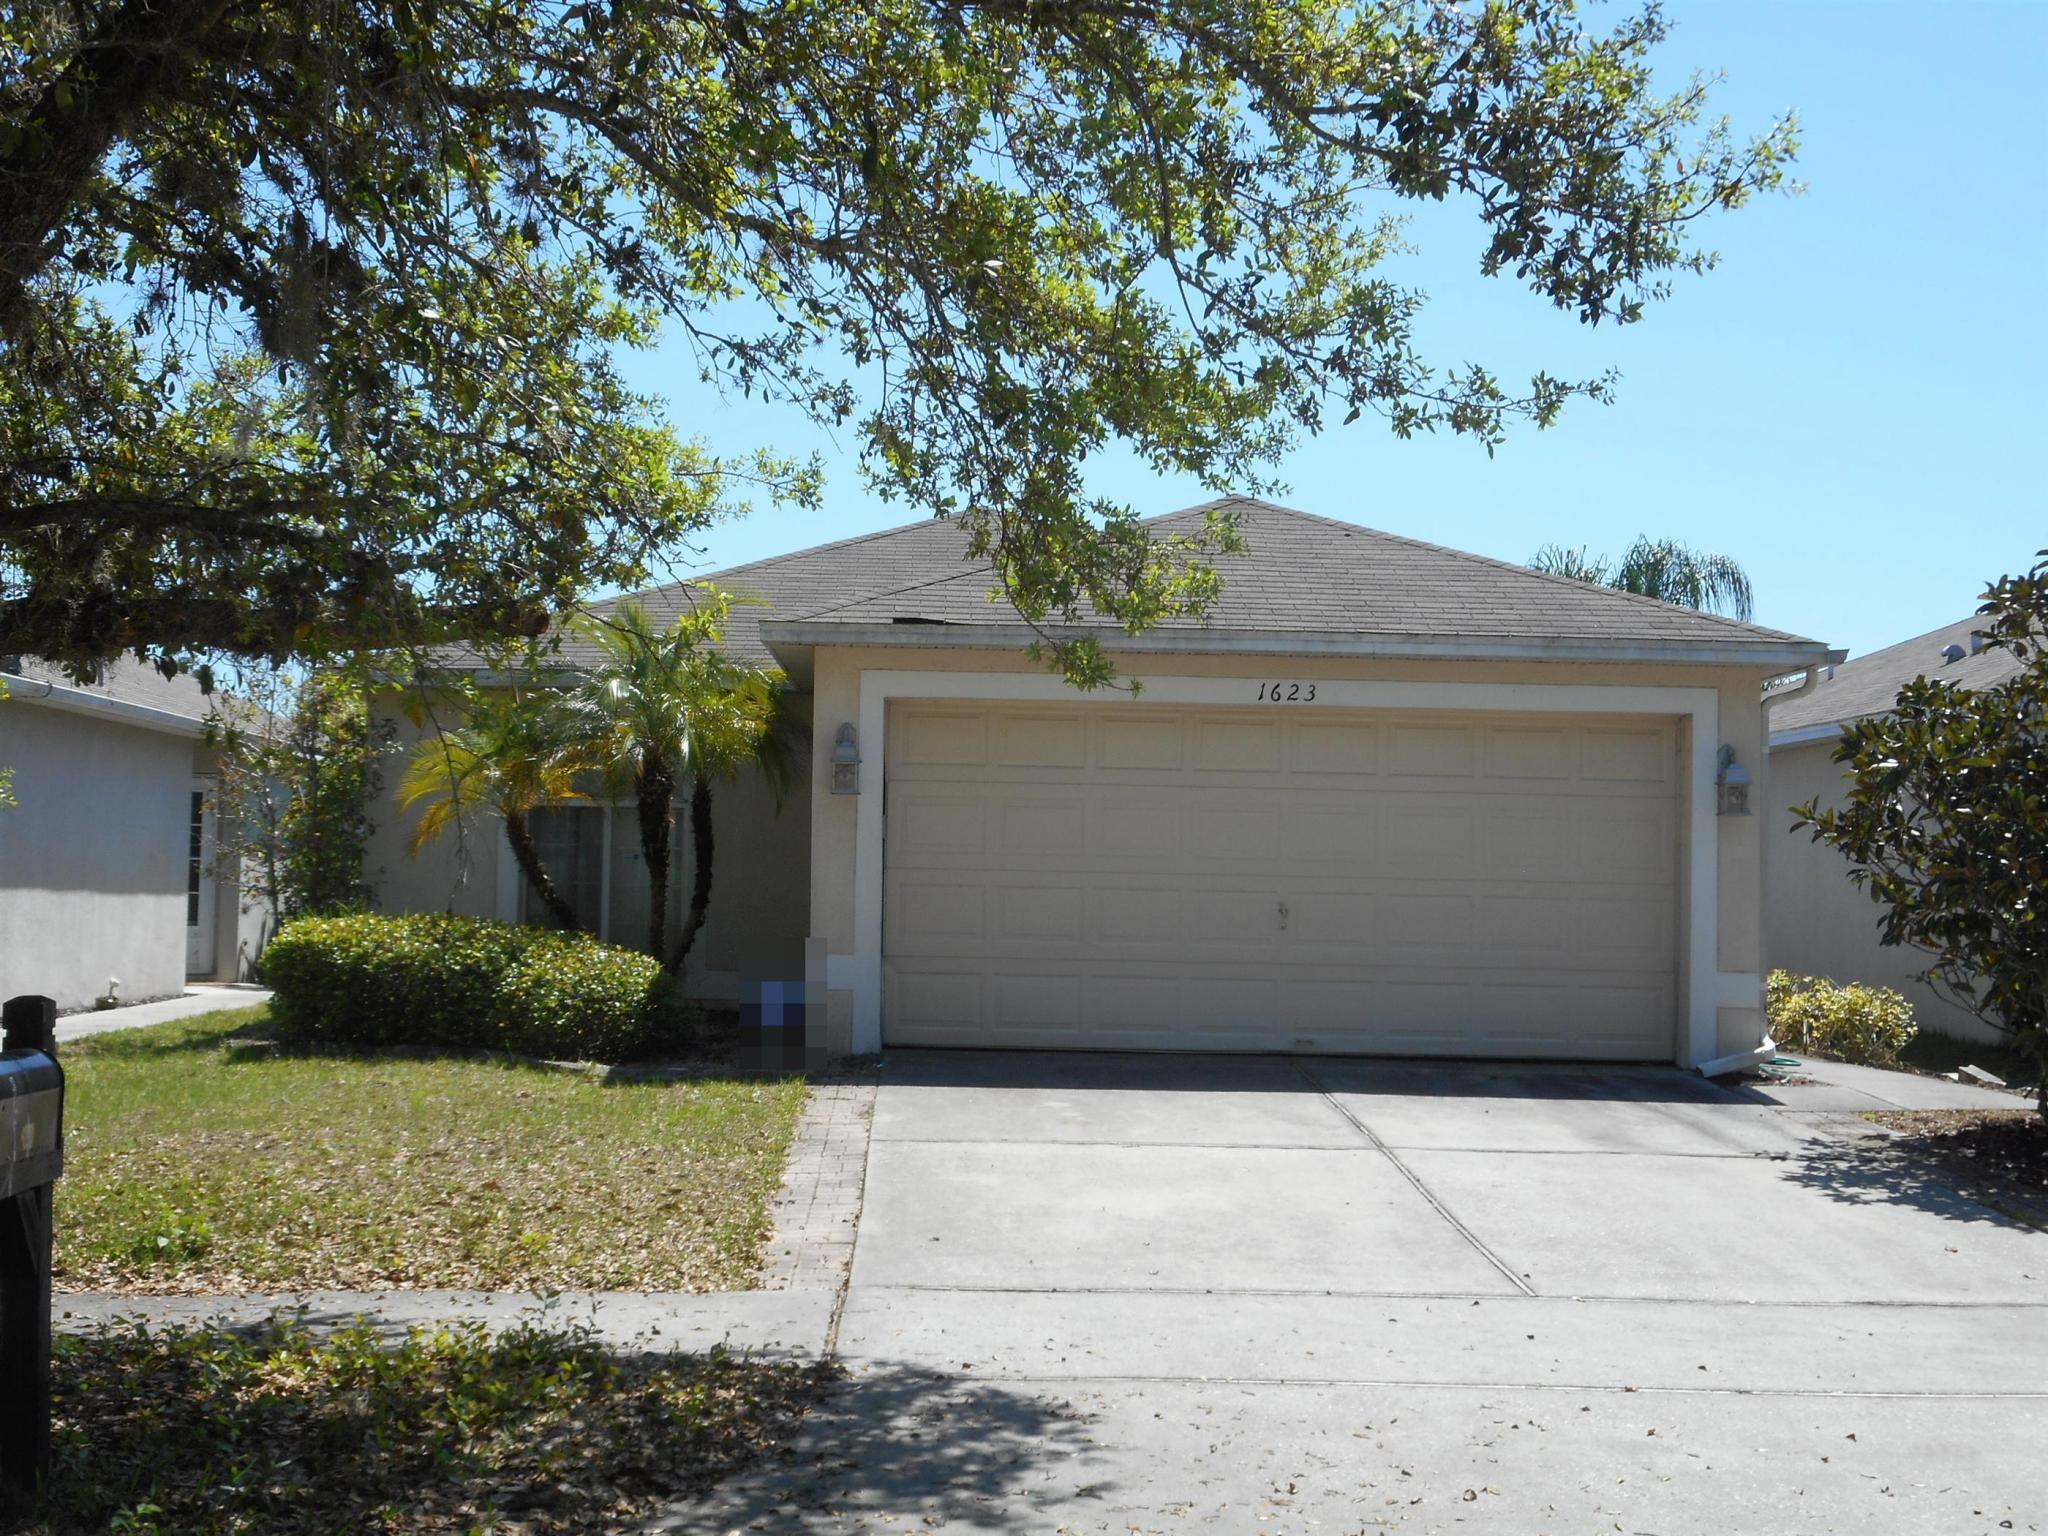 1623 sherbourne st winter garden fl 34787 estimate and home